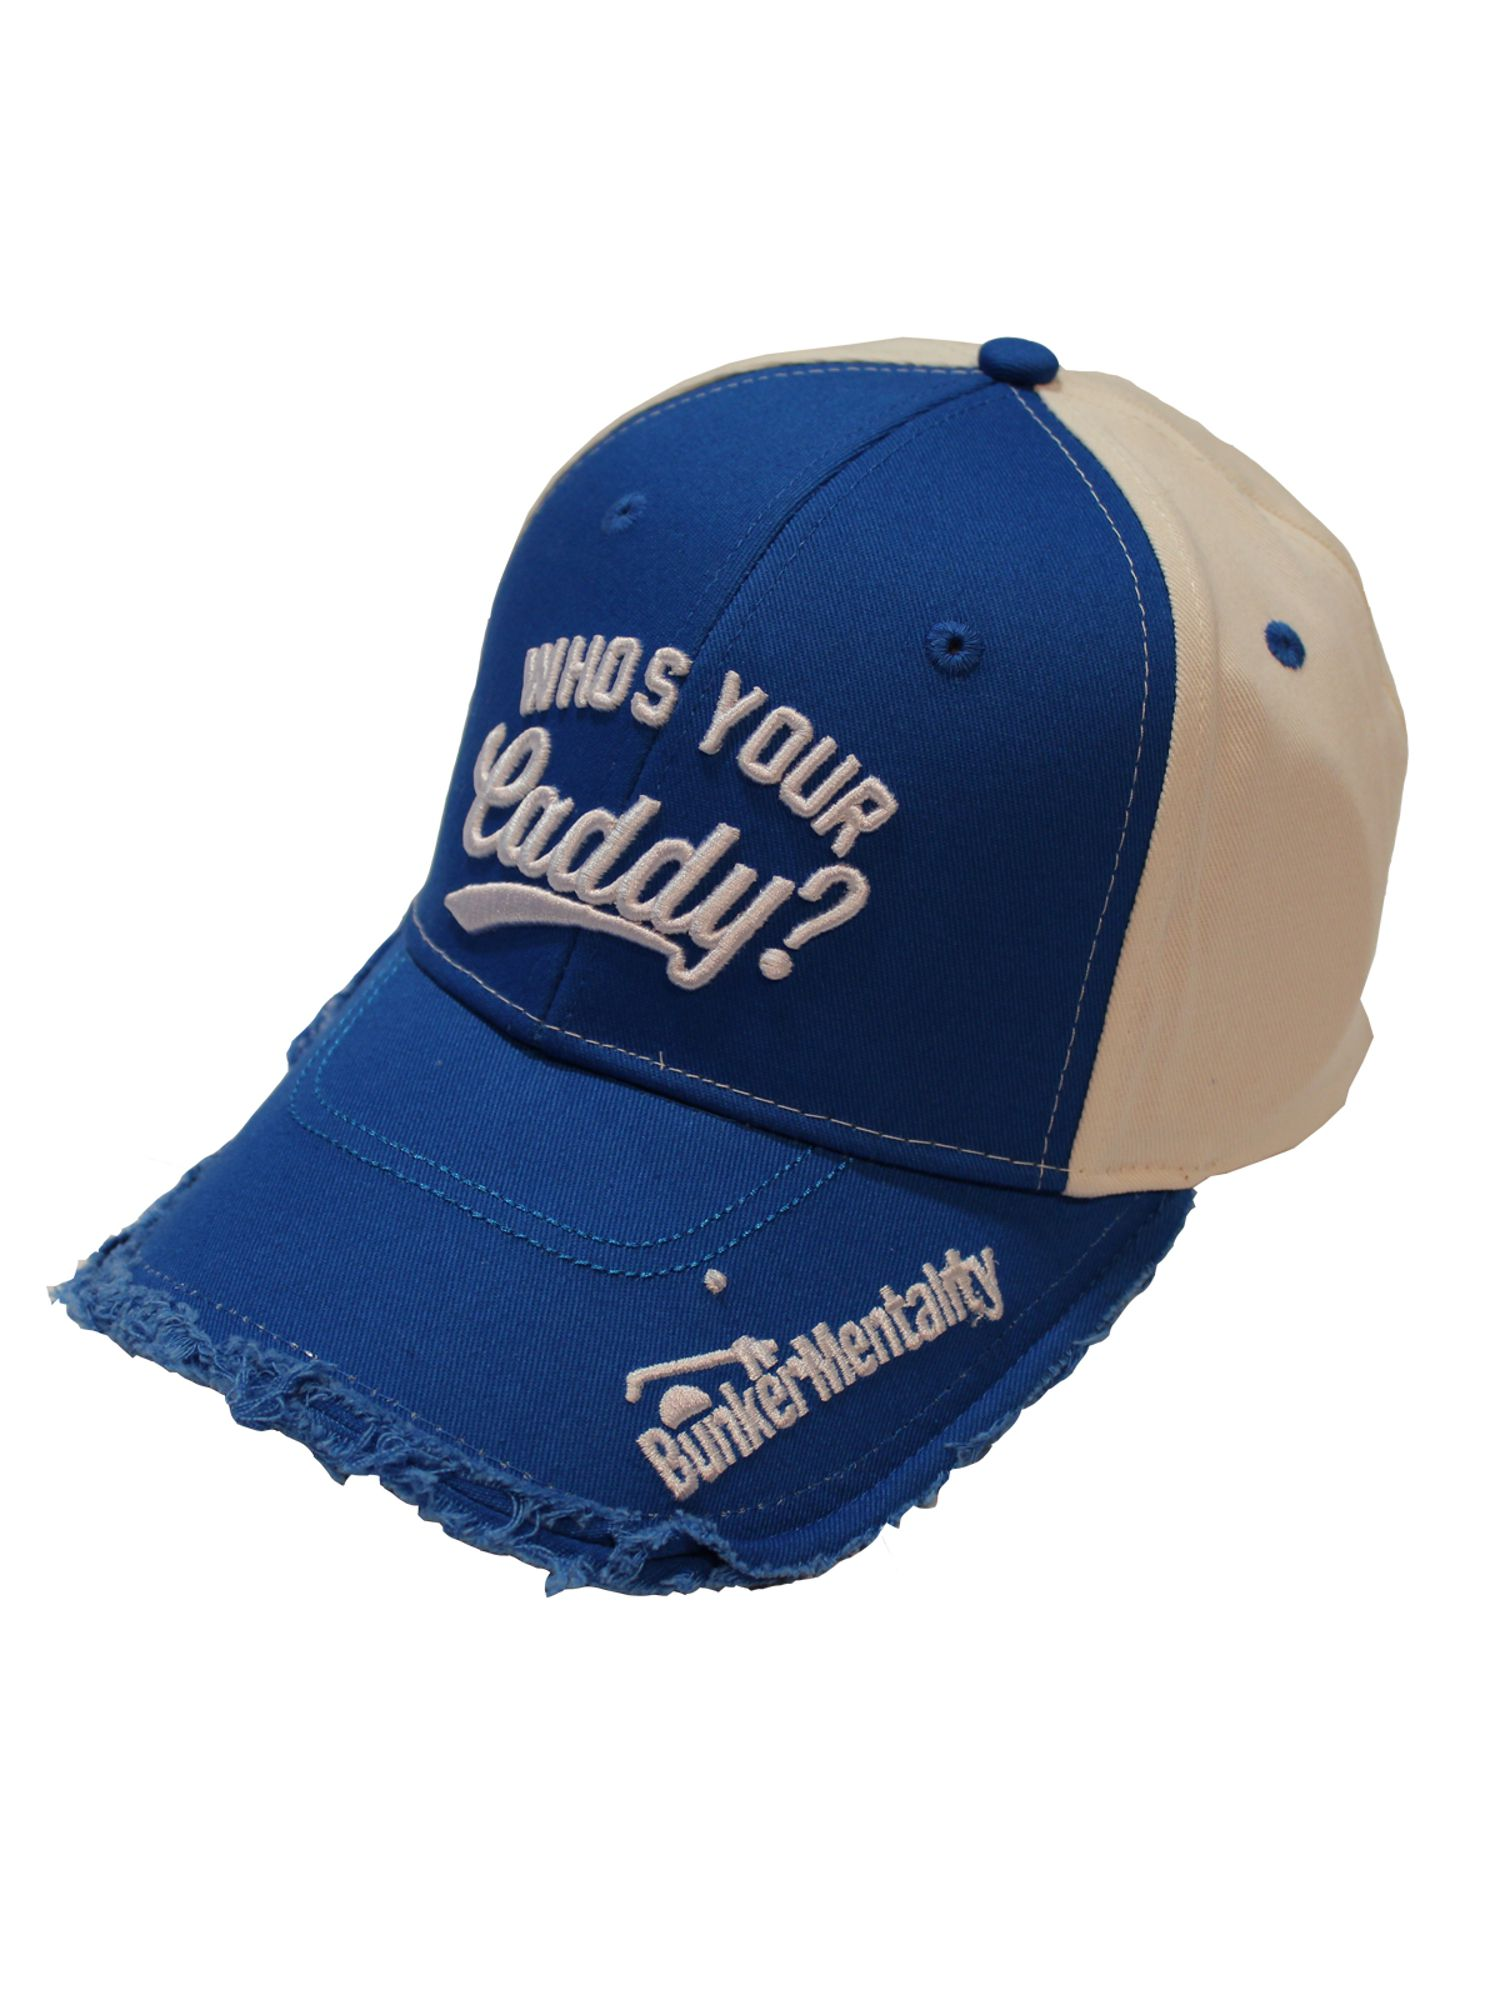 Wyc badge cap